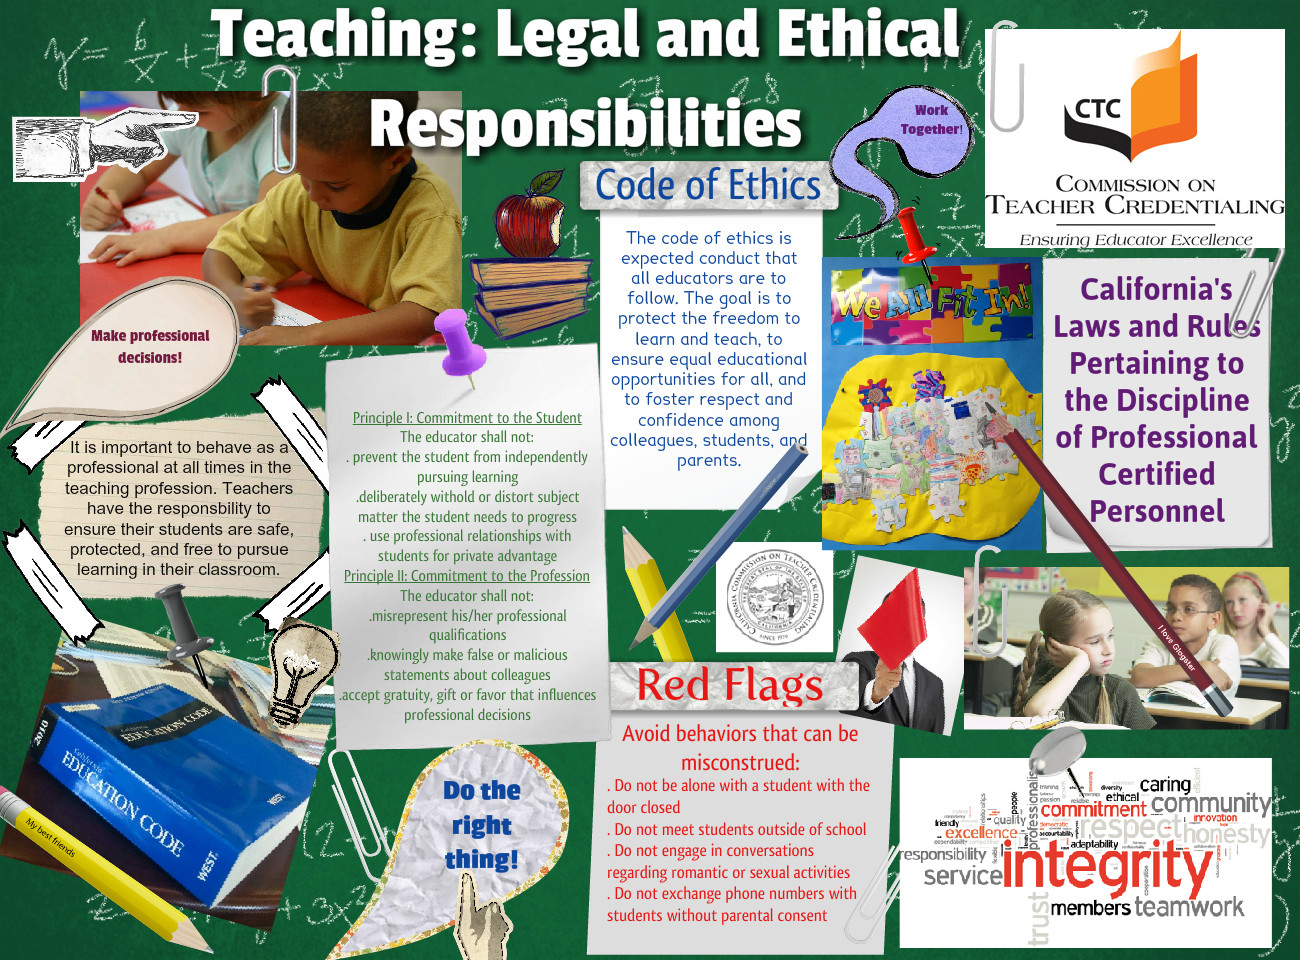 Teaching: Legal and Ethical Responsibilities